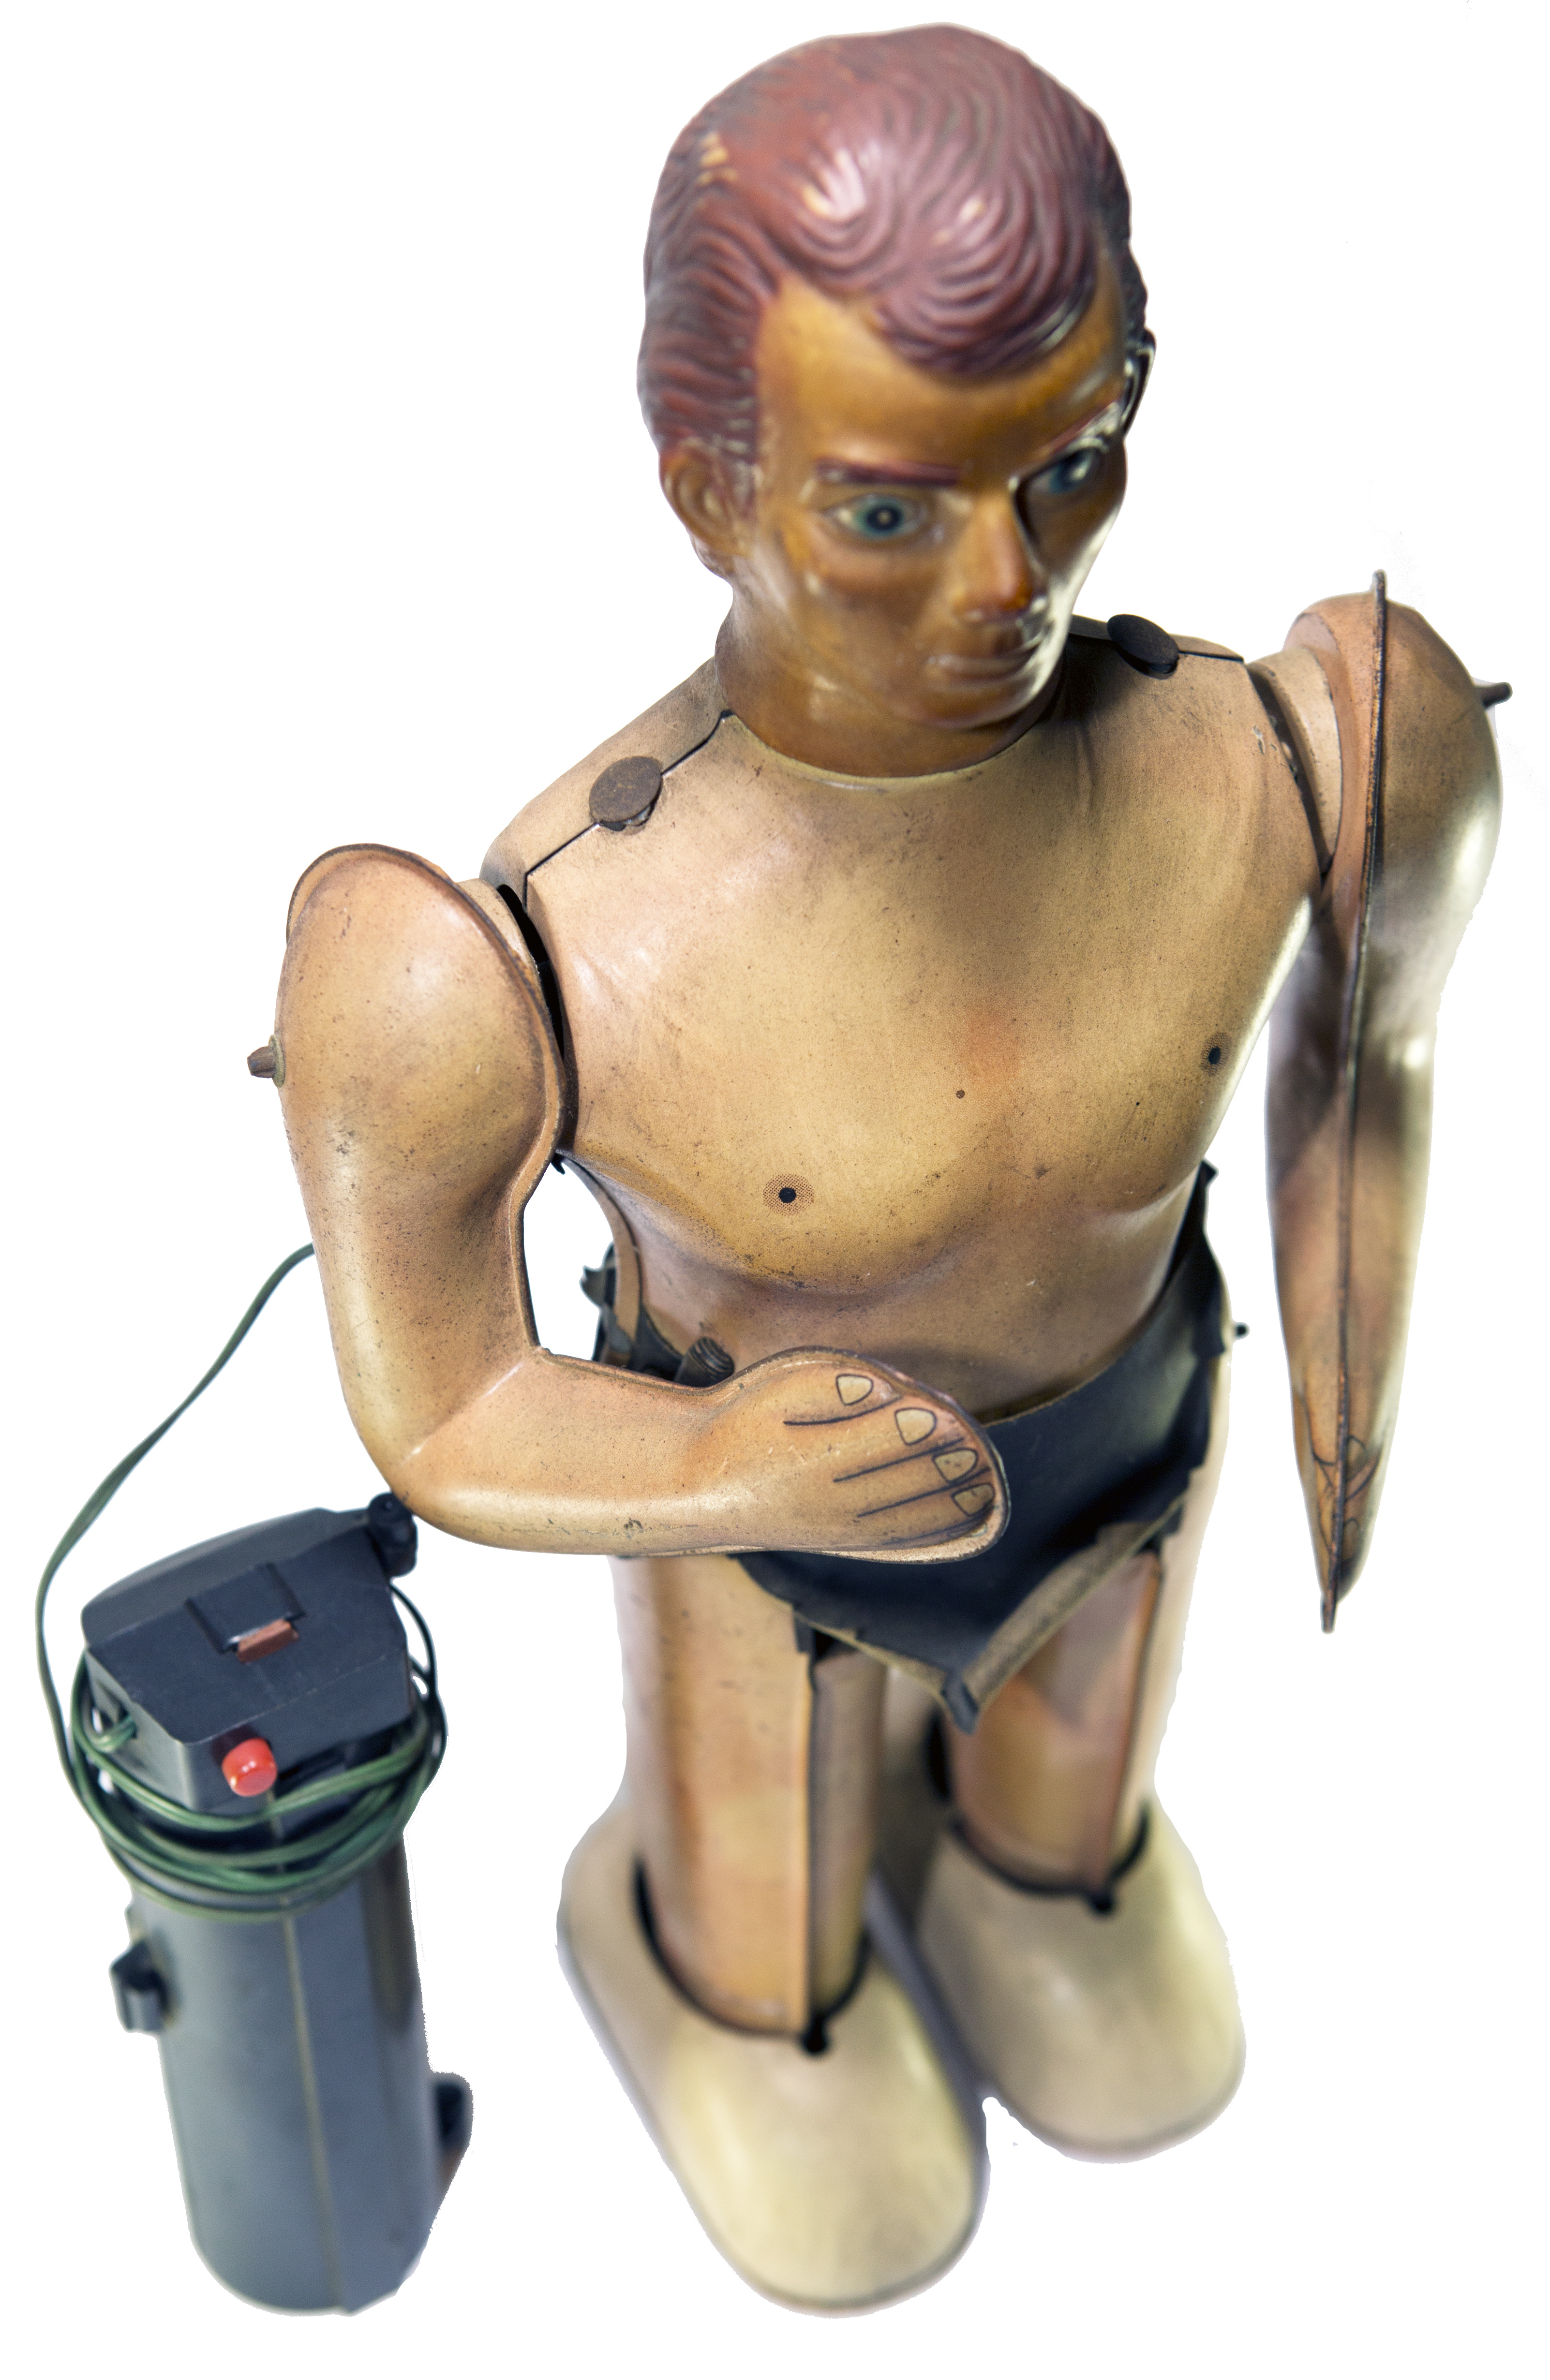 TARZAN WITH WIRED REMOTE CONTROL